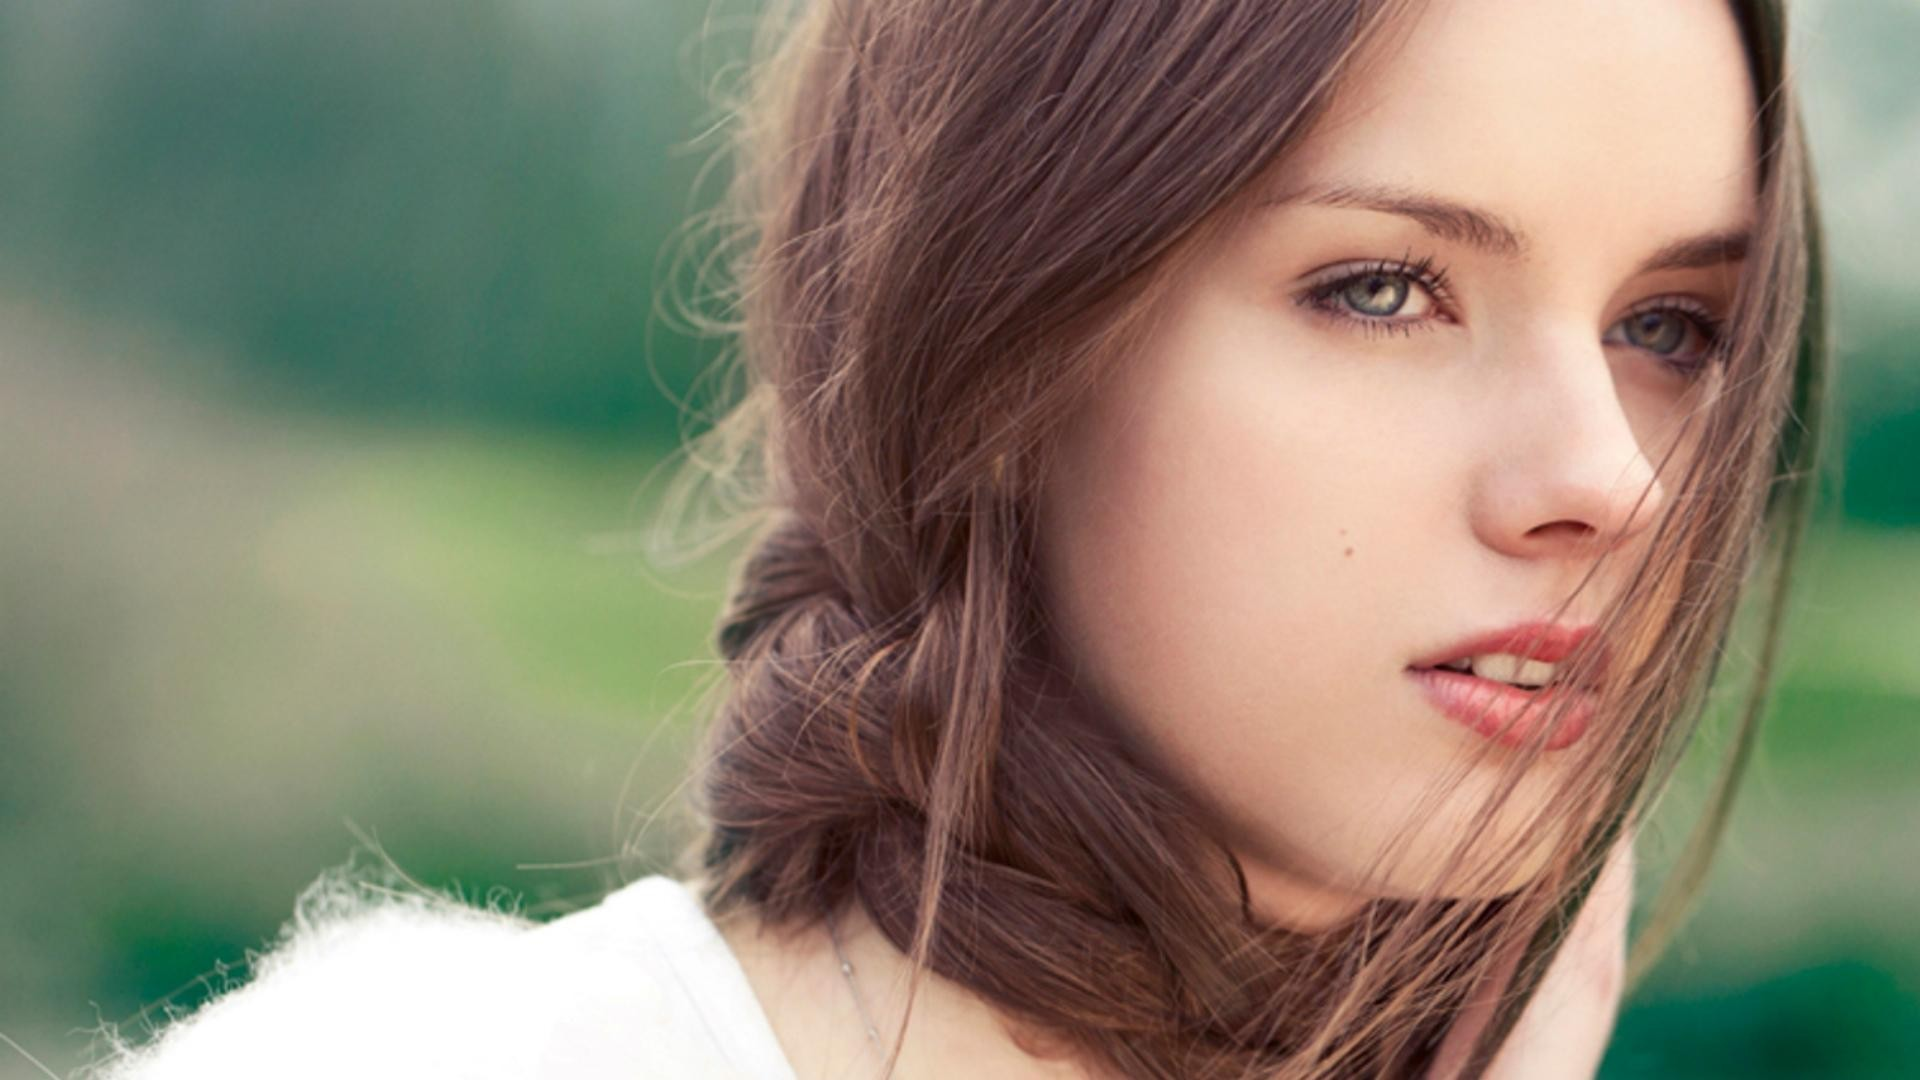 Most-Beautiful-Girl-in-World-Wallpapers-HD